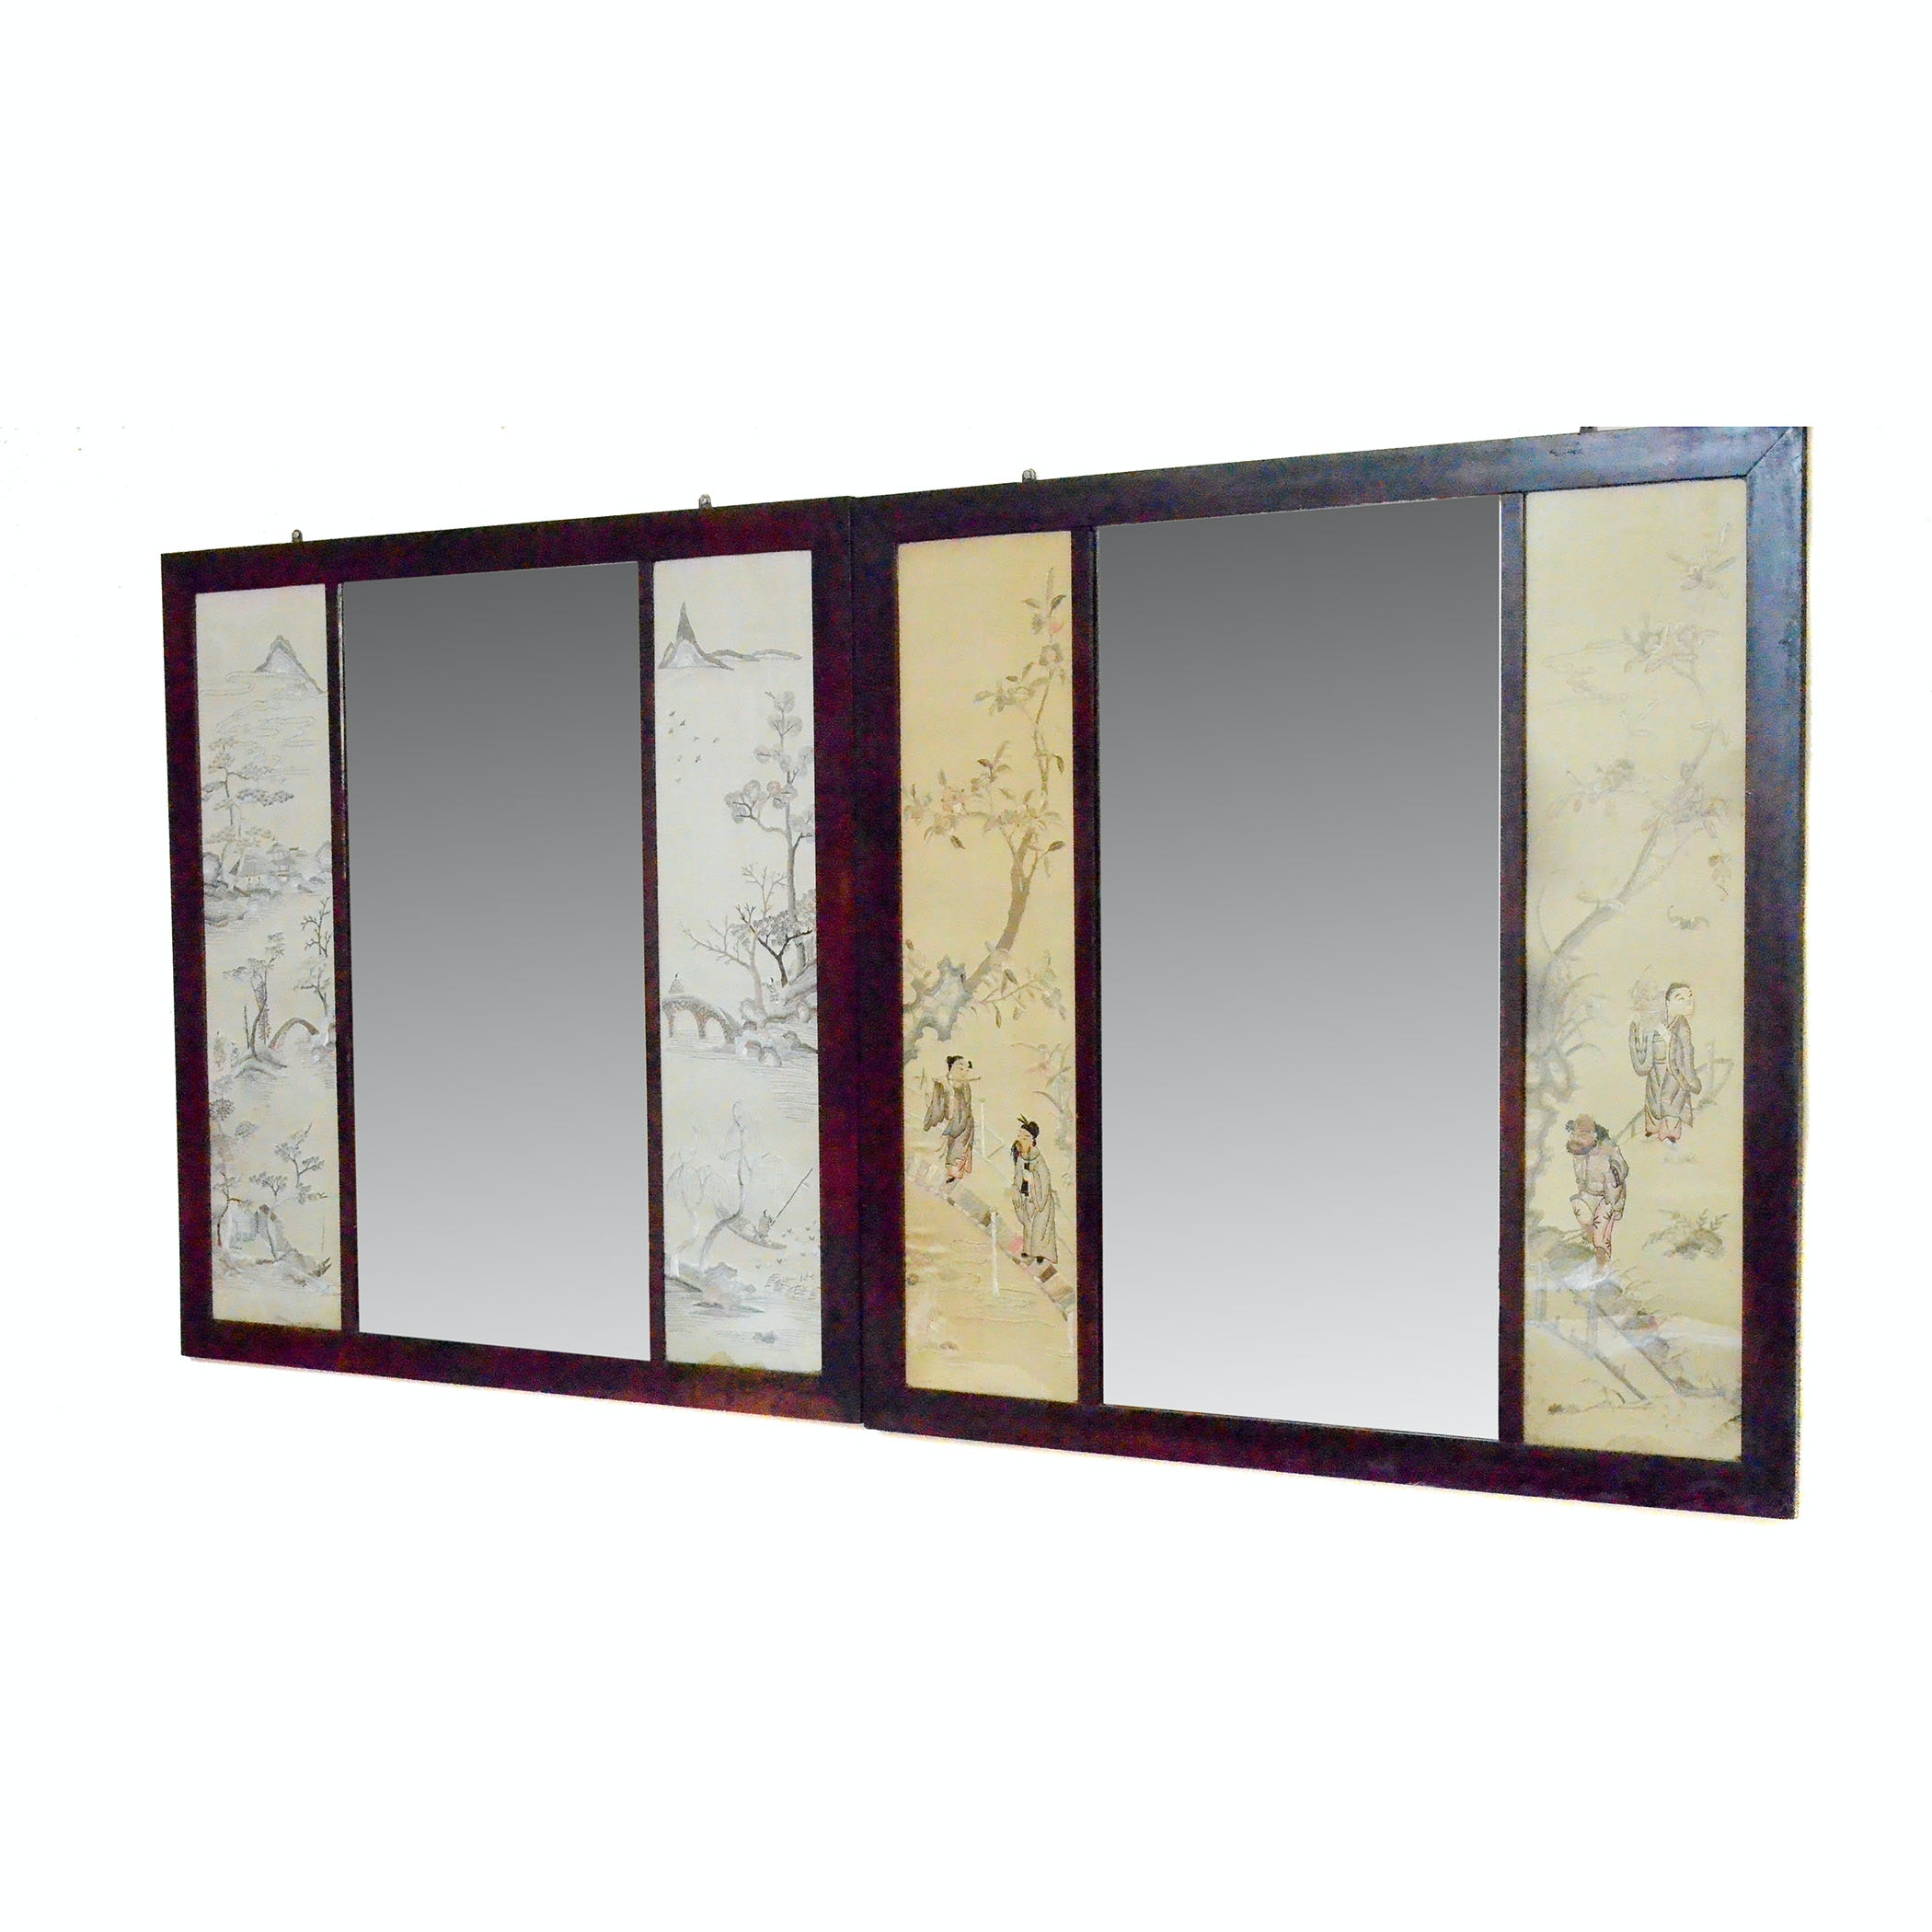 Chinese Inspired Mirrors With Embroidered Silk Side Panels